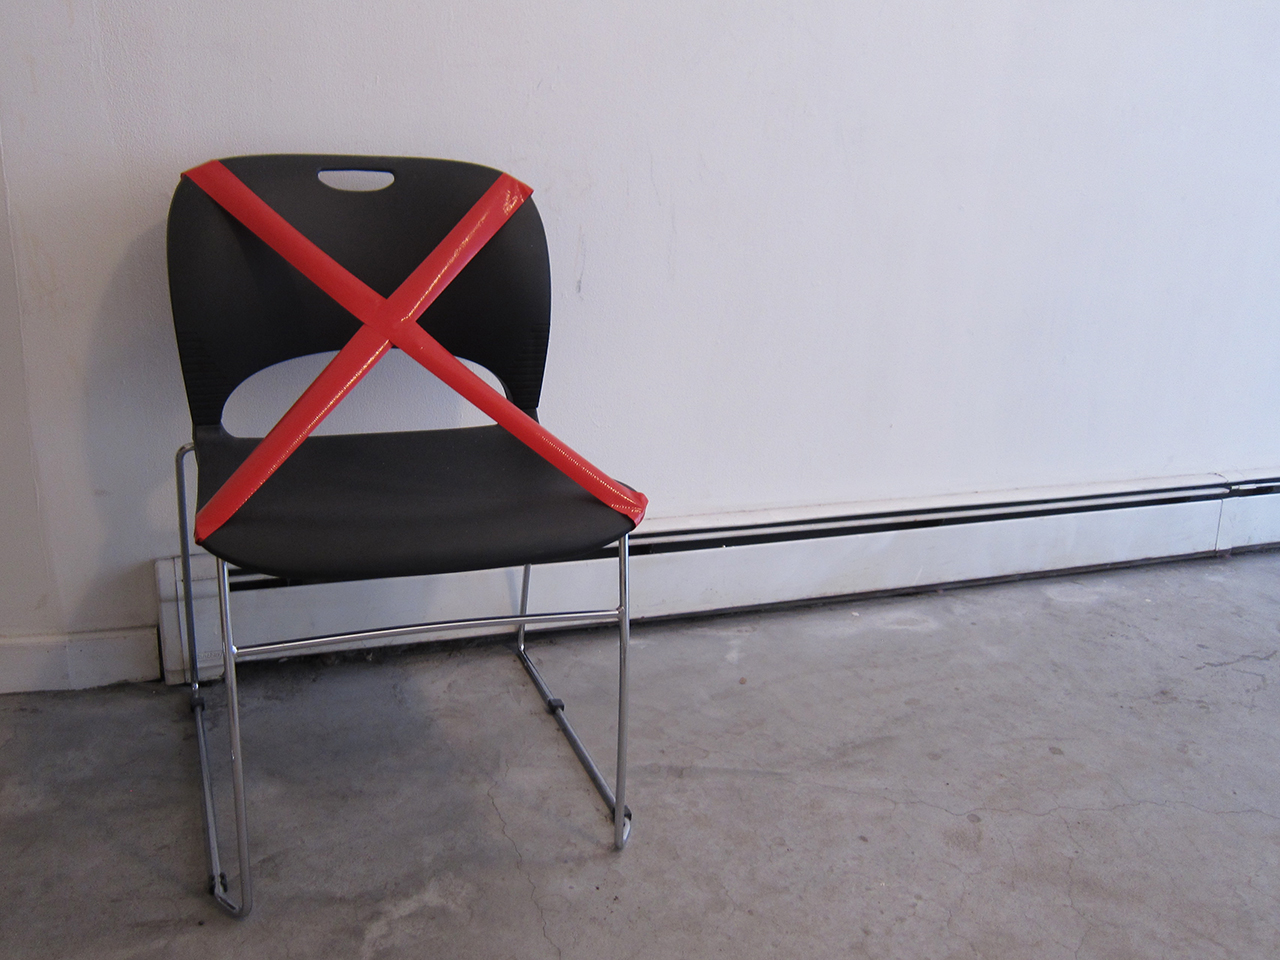 An empty chair to represent and honor those unable to participate in conversations at FIREWALL